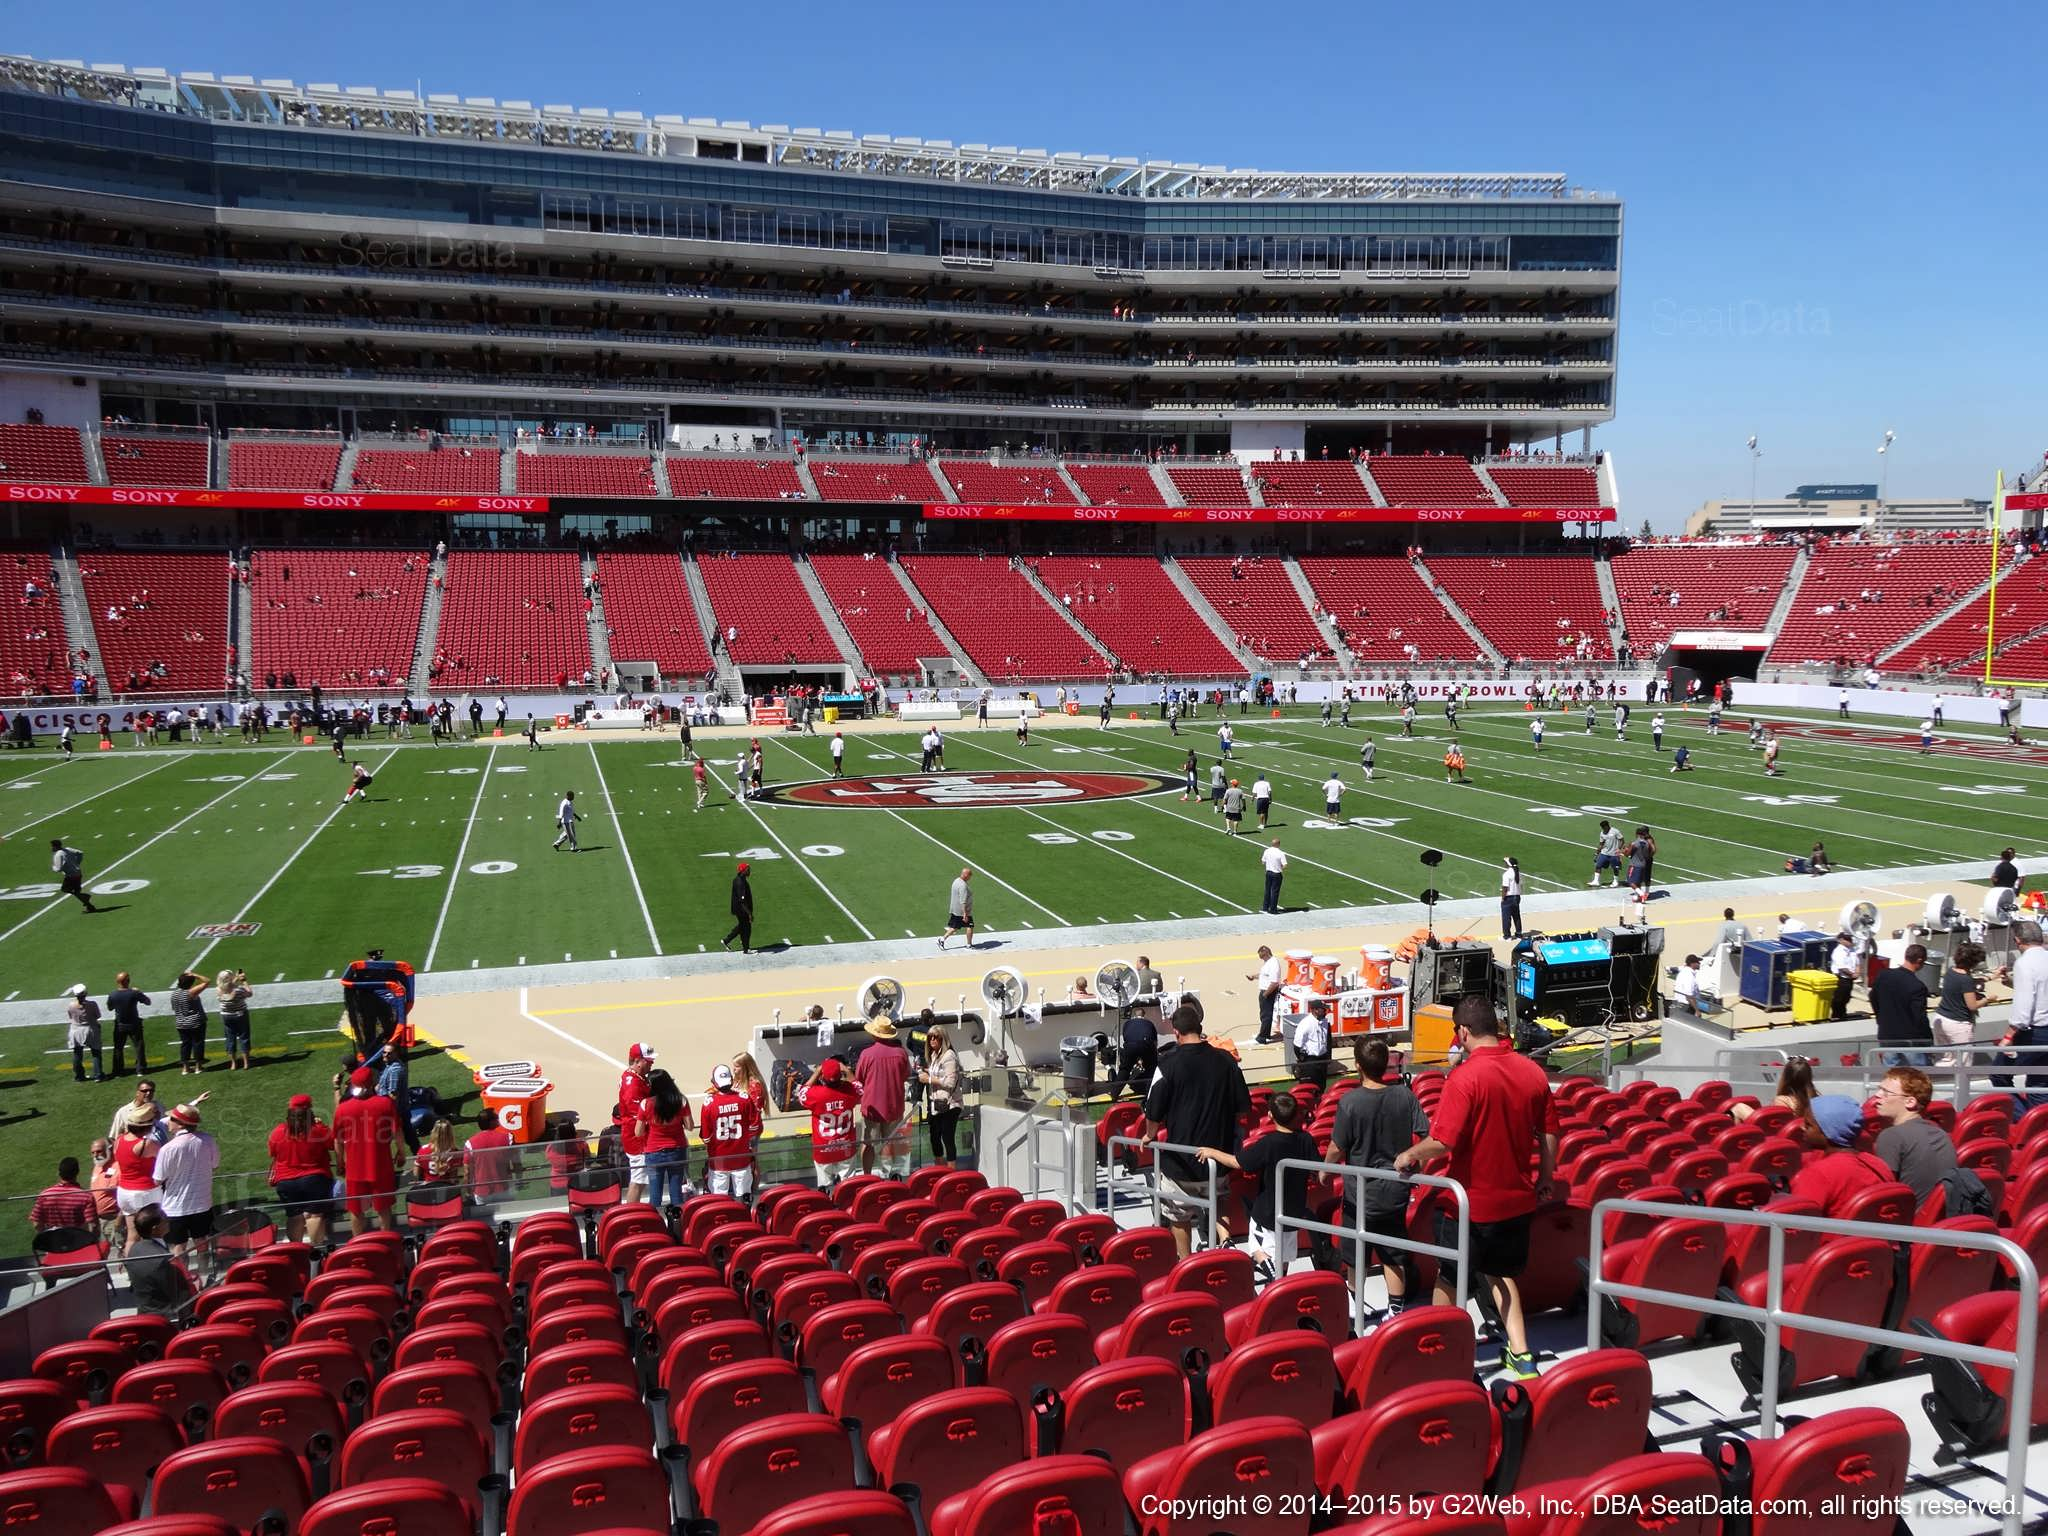 Seat view from section 117 at Levi's Stadium, home of the San Francisco 49ers